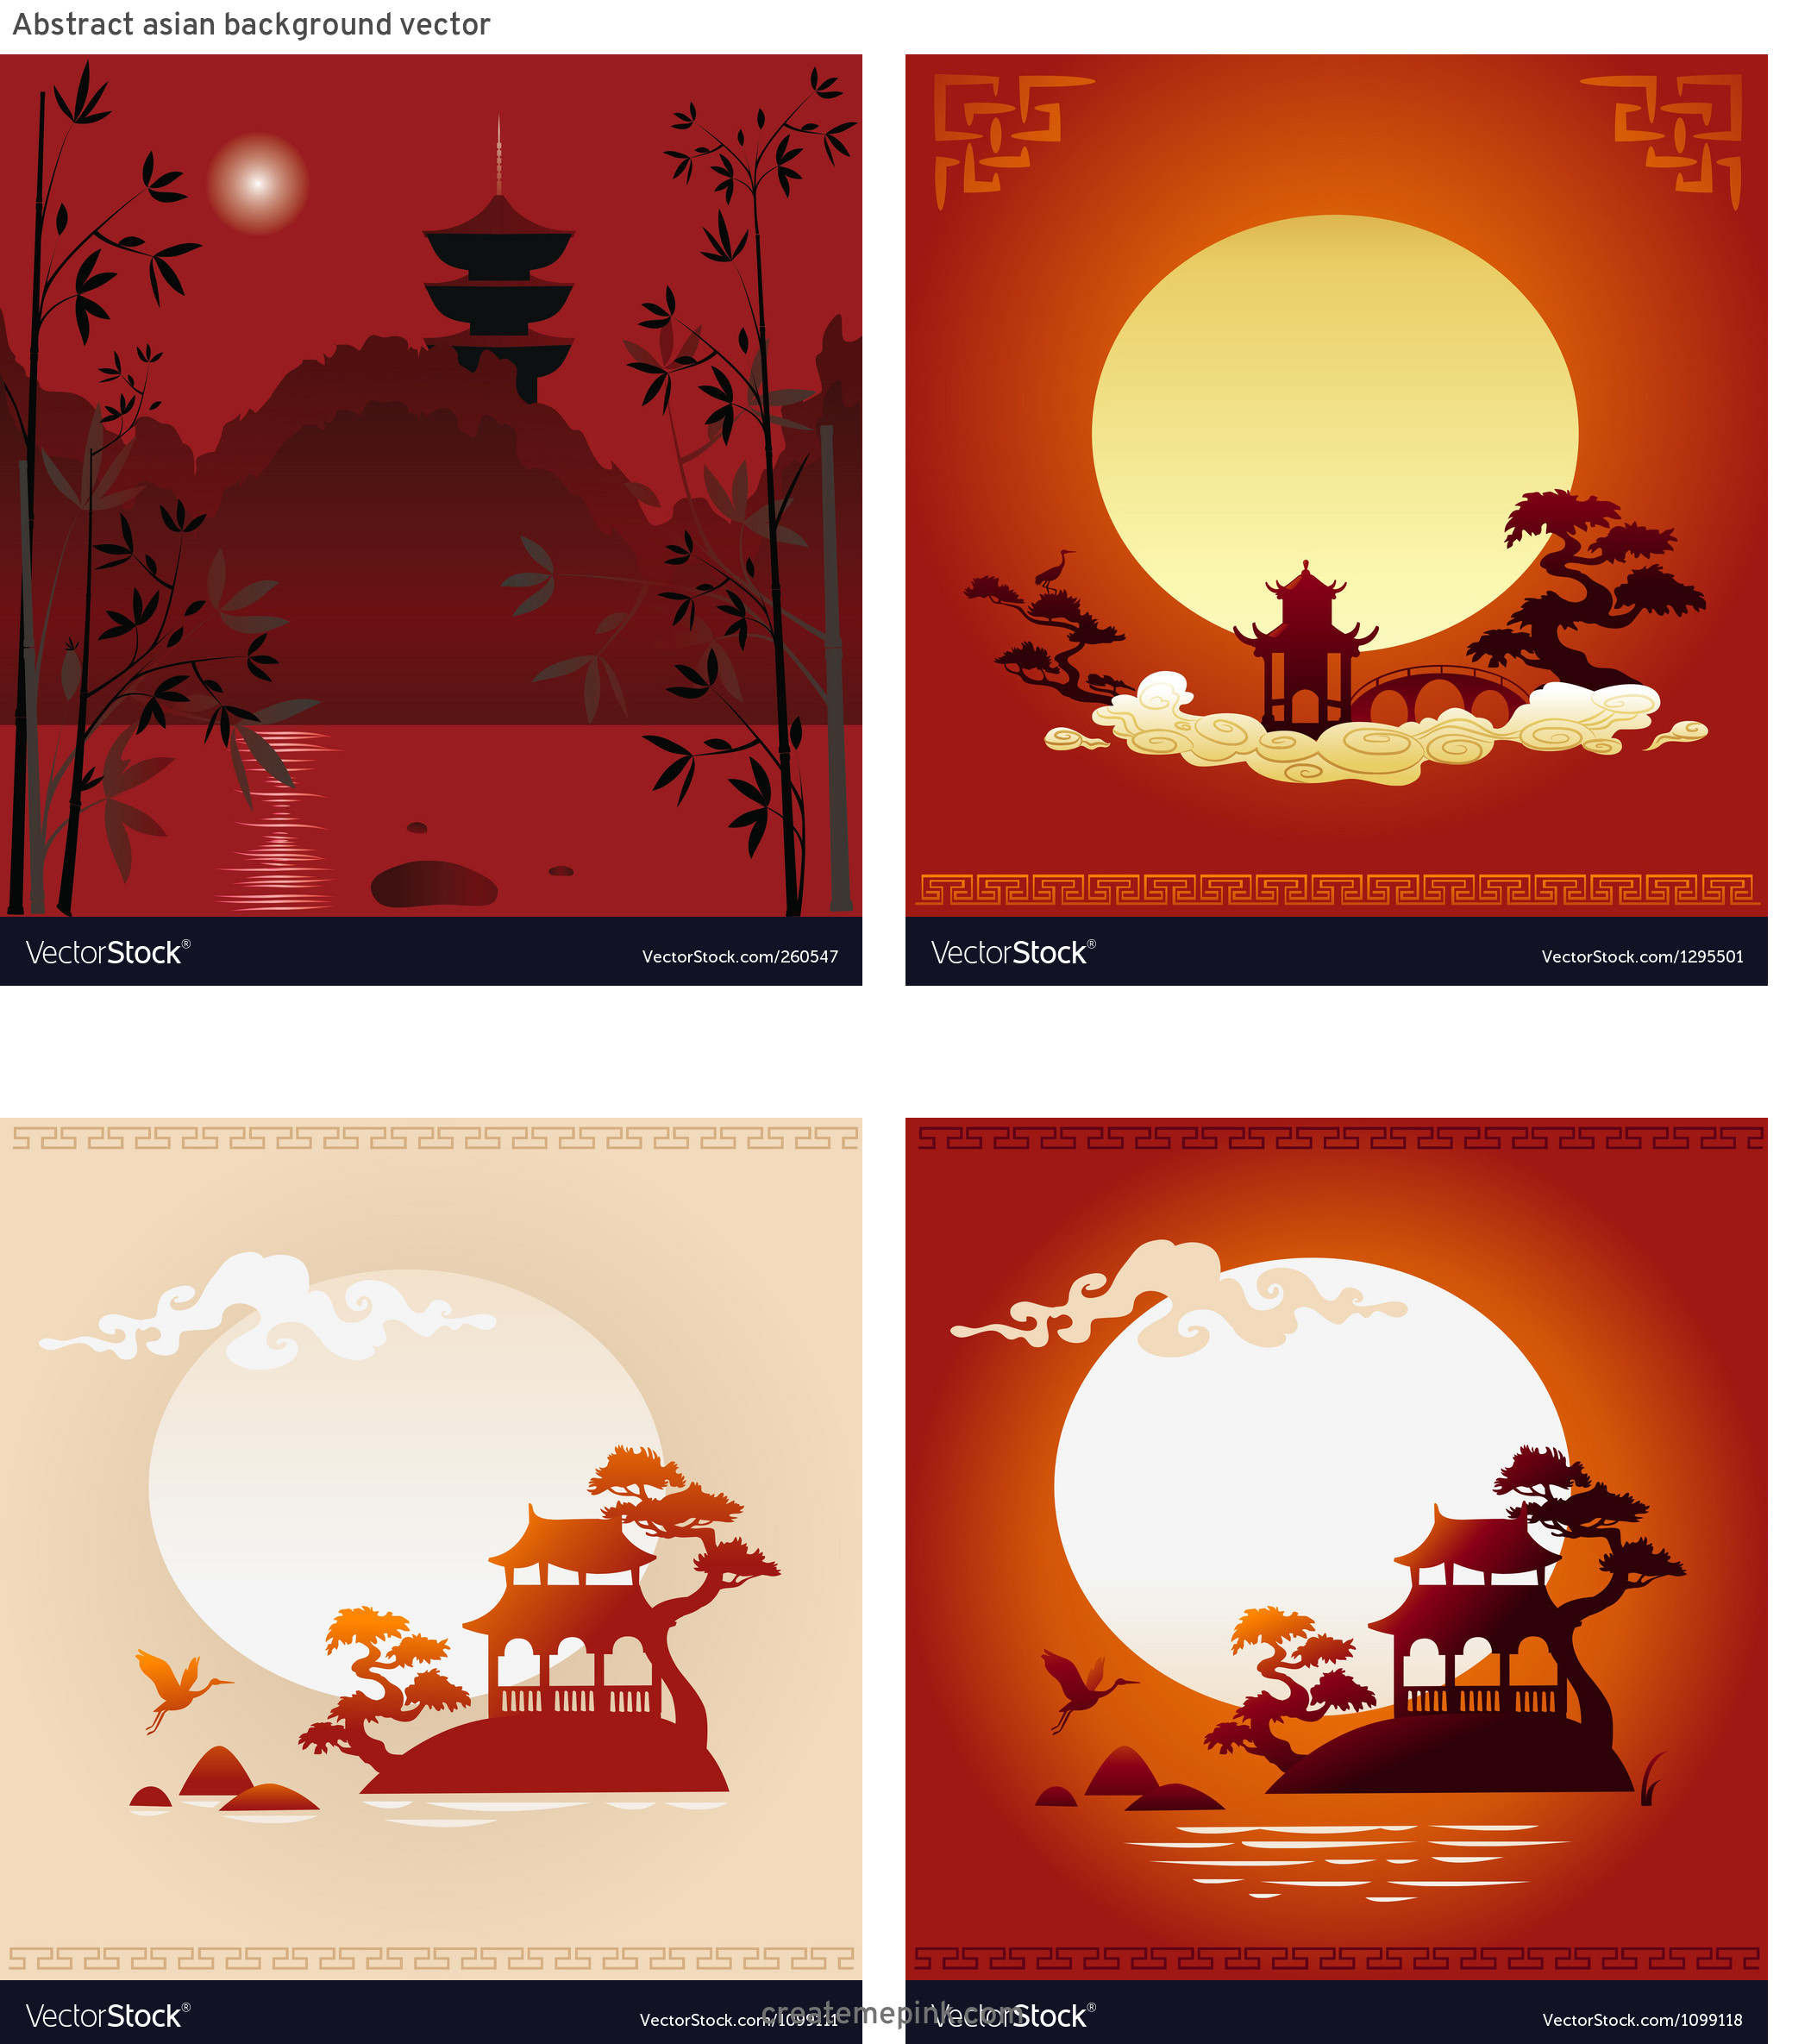 Asian Background Vector: Abstract Asian Background Vector